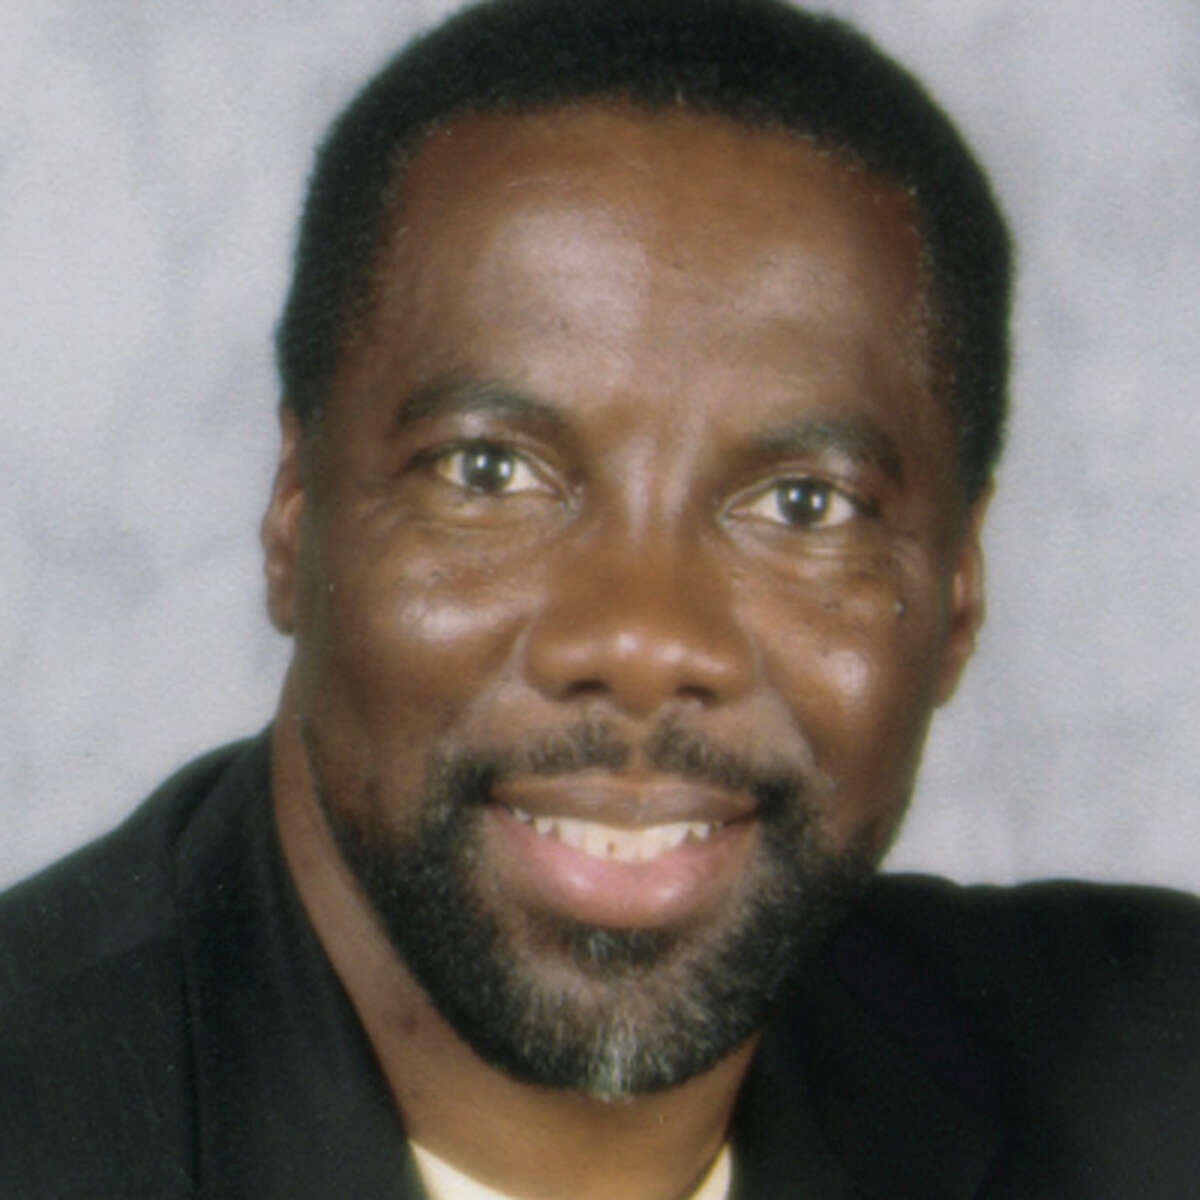 Candidate Kenneth Perkins